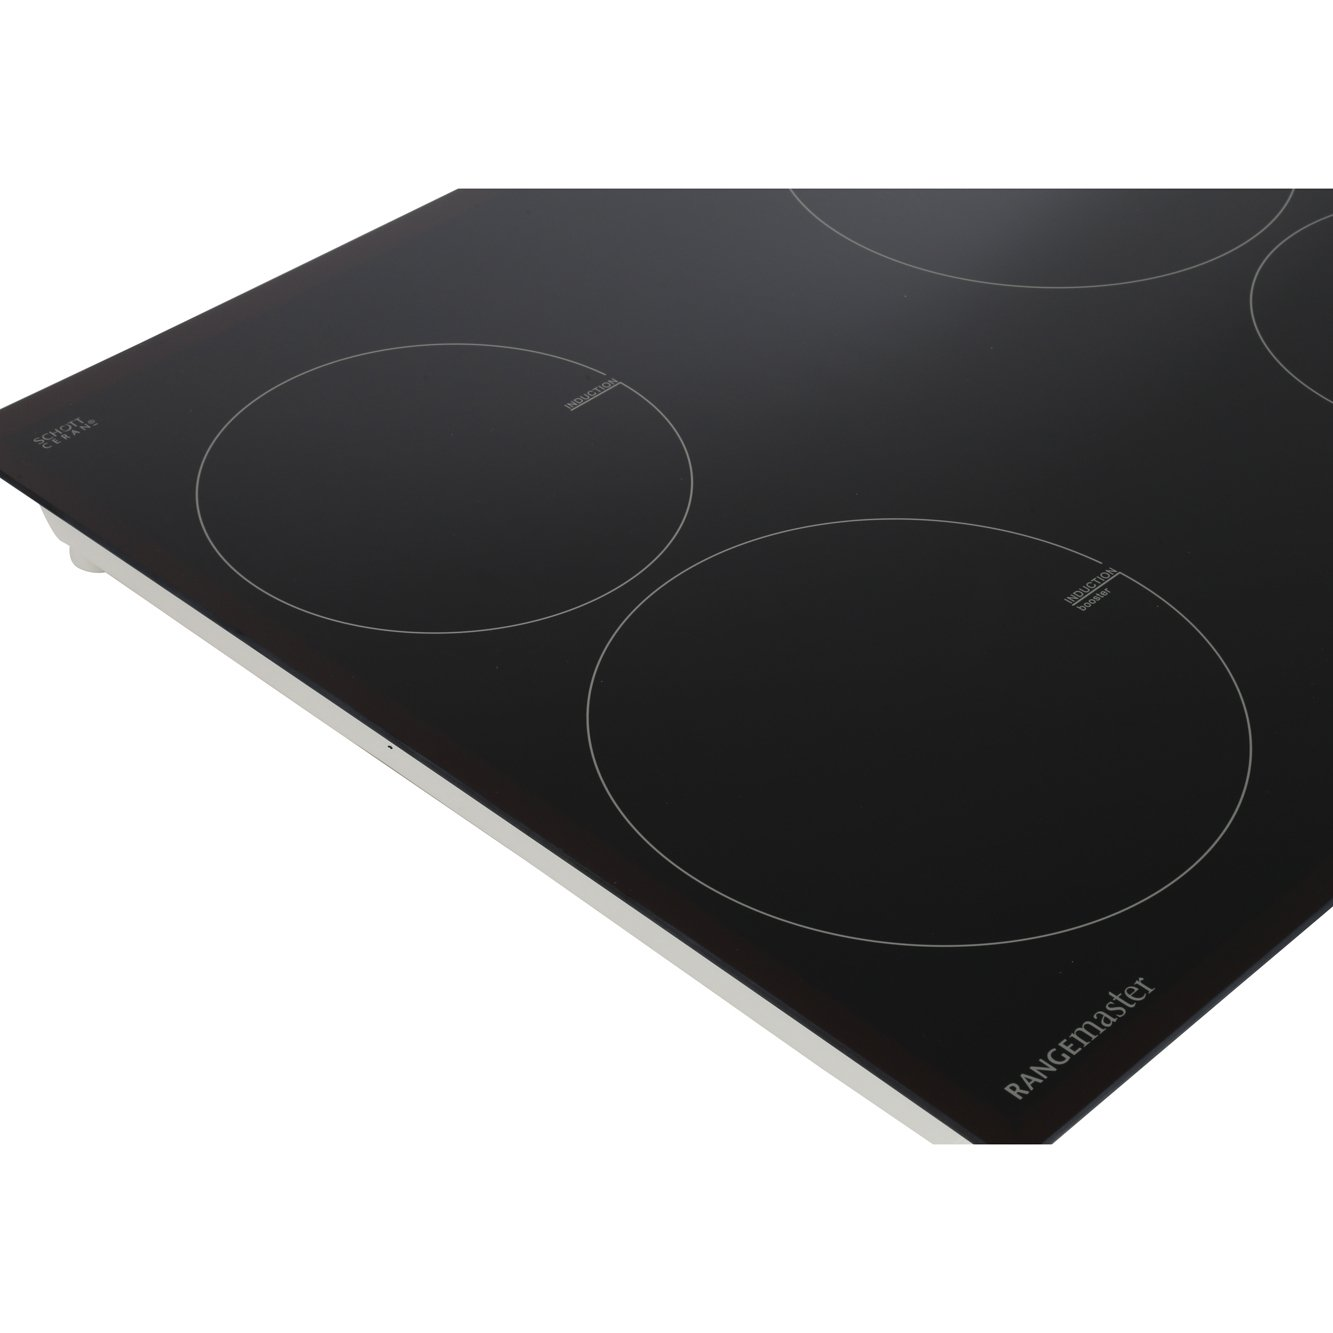 Buy Rangemaster Rmb60hpeigl Black Induction Hob 11227